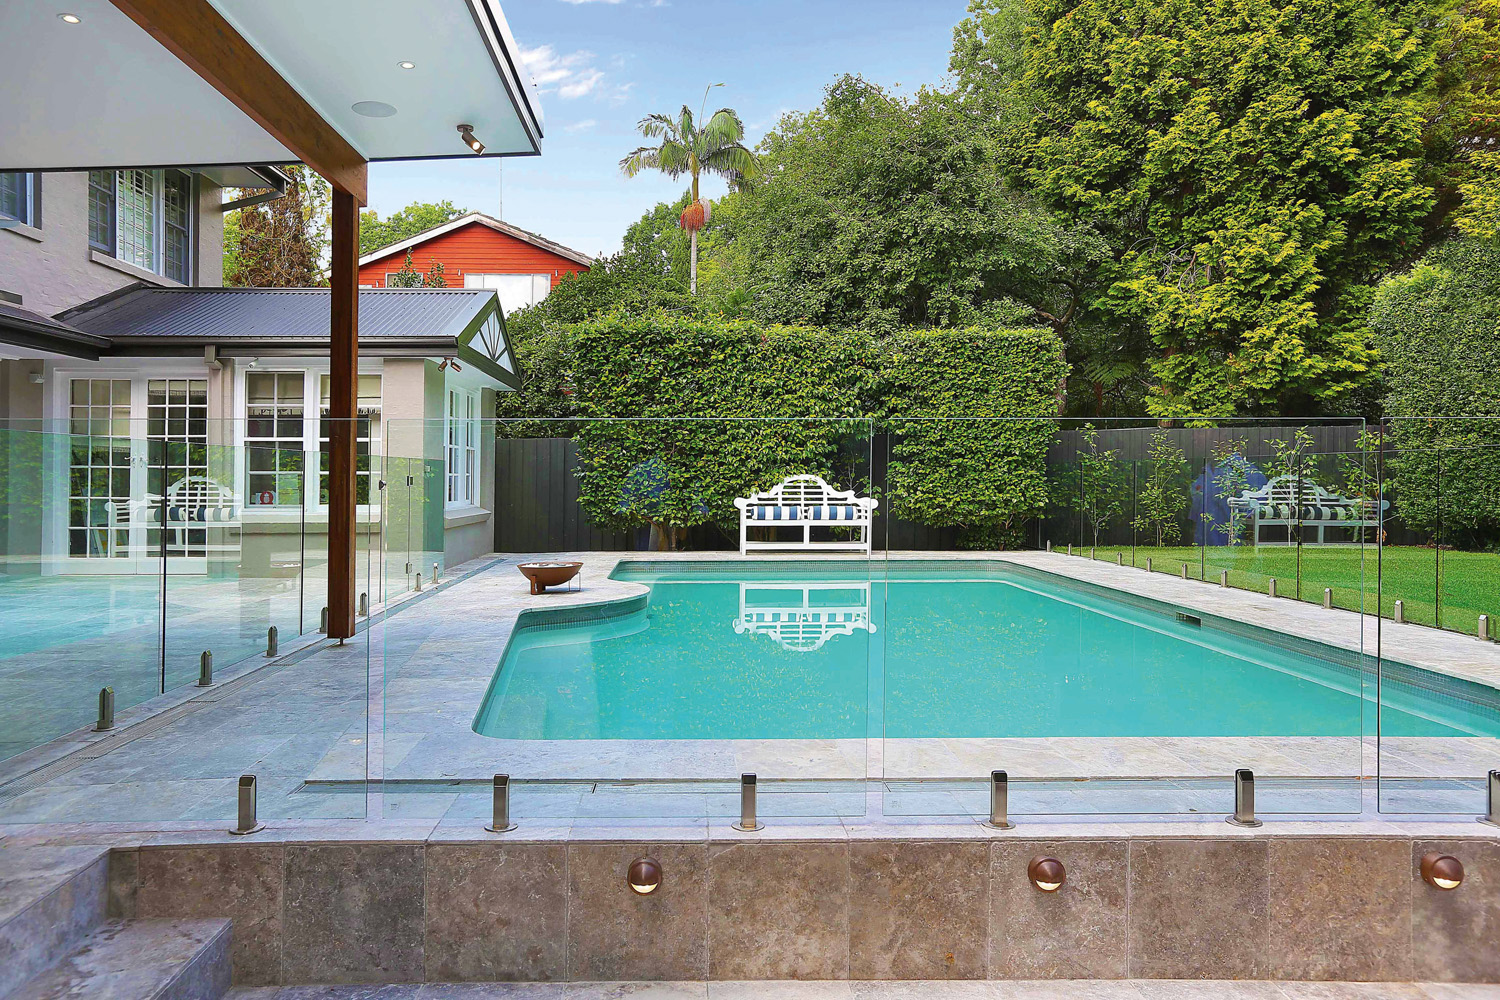 The frameless glass pool fencing ensures clear views around the totally reinvented rear garden